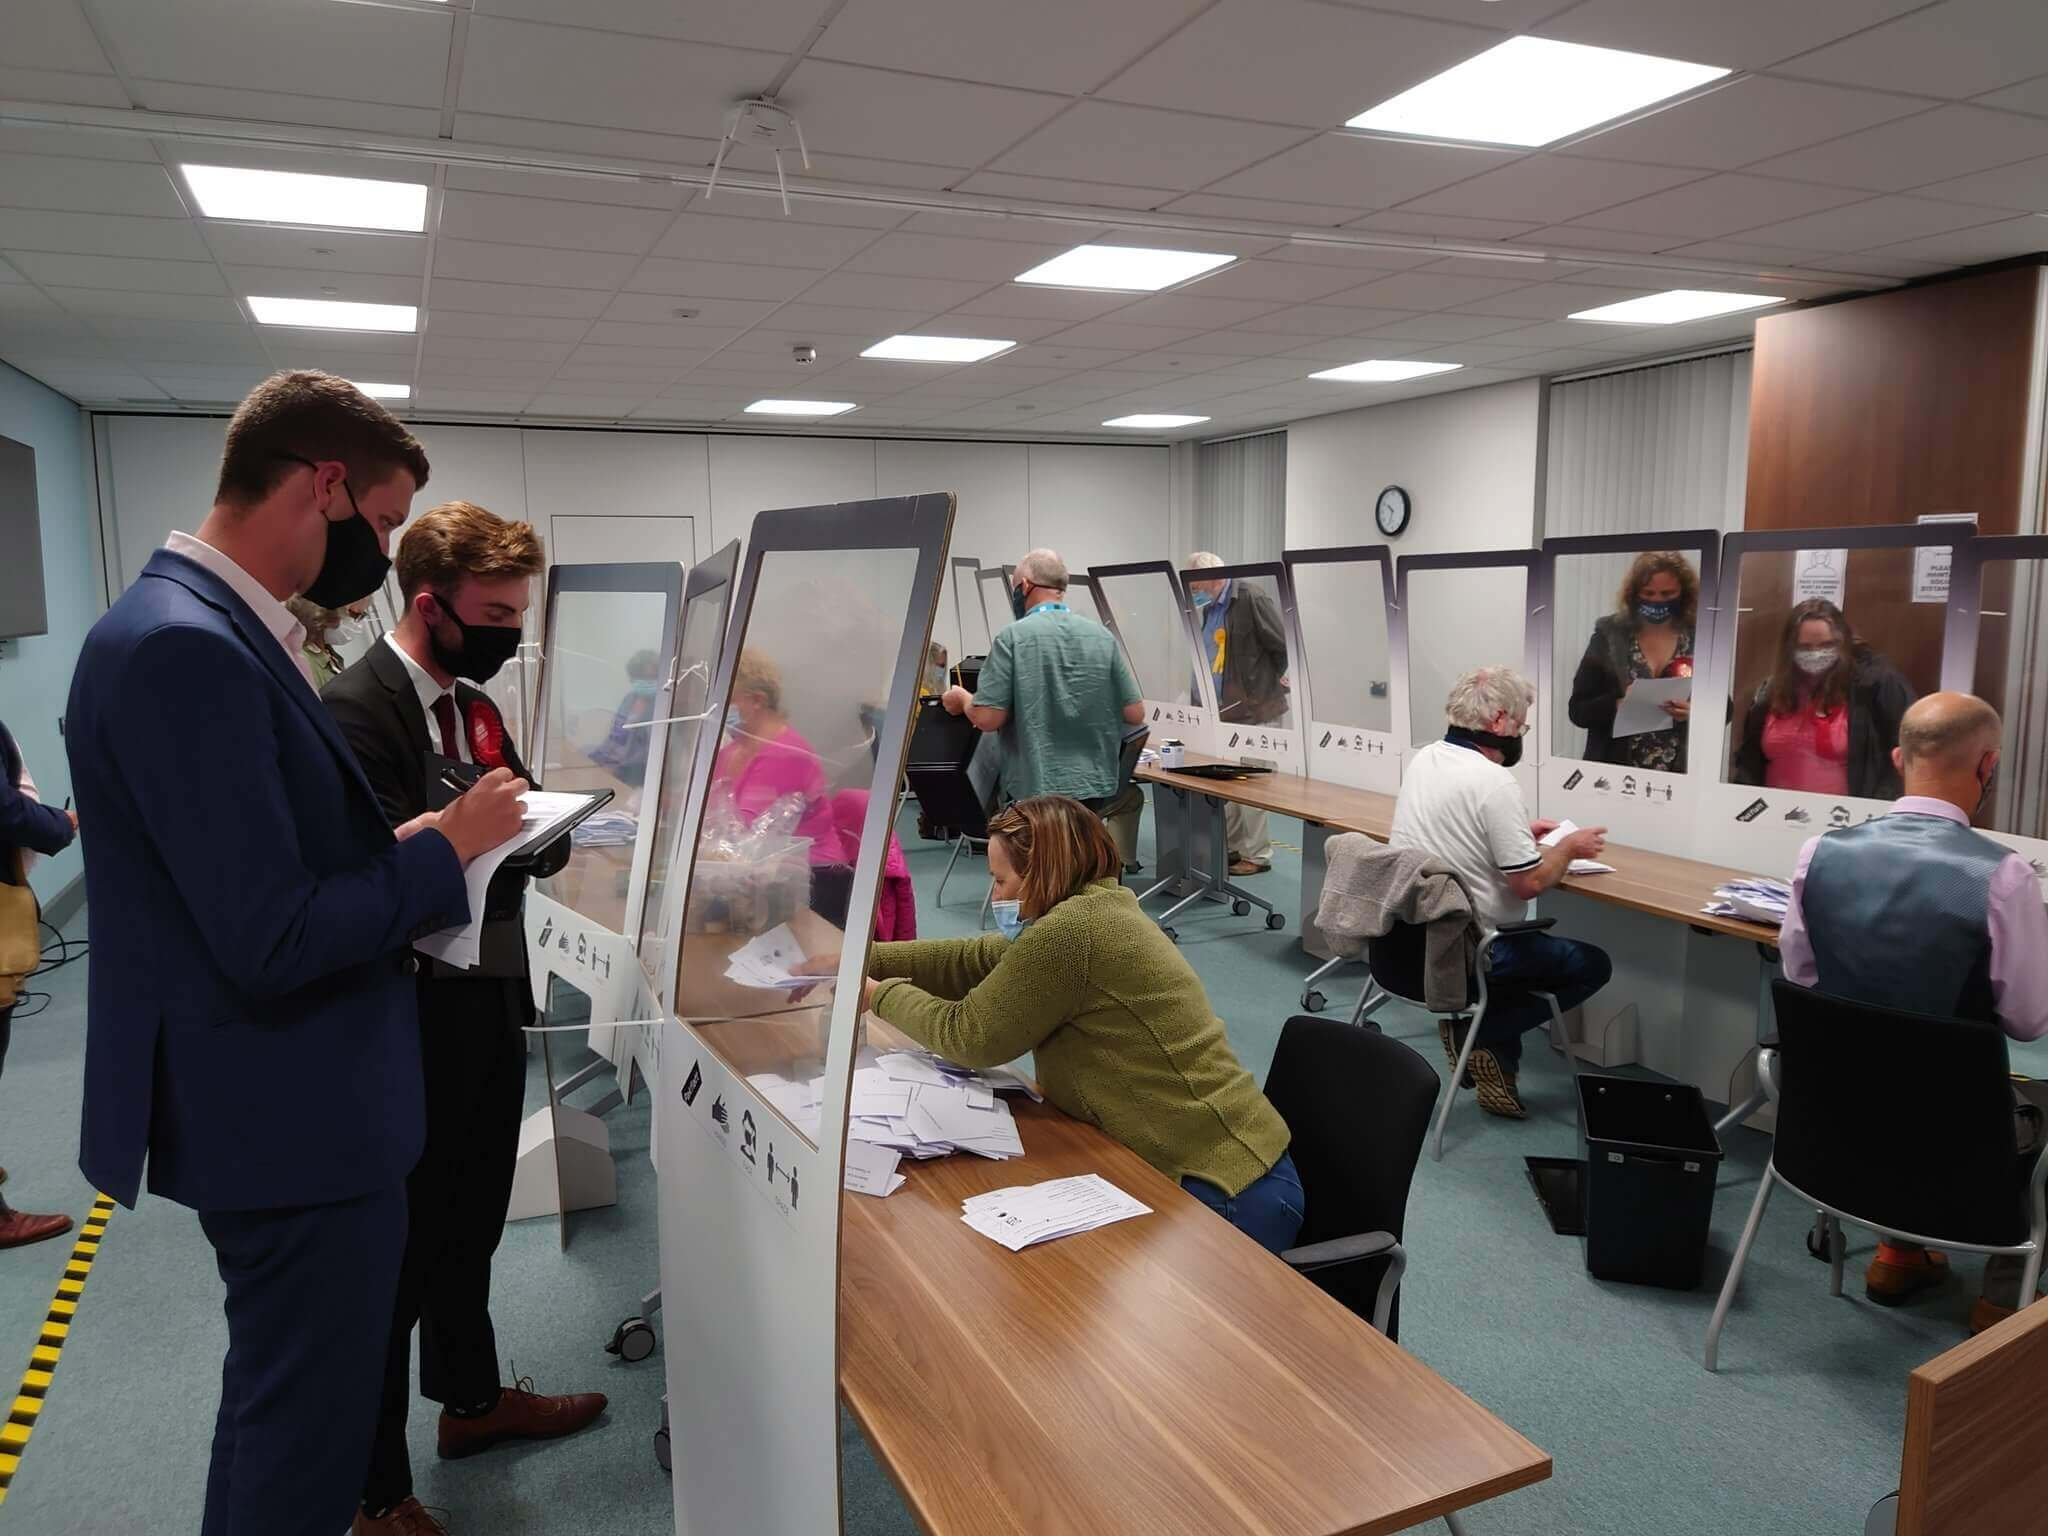 Ballots are counted at East Devon District Council. Image: Joe Ives